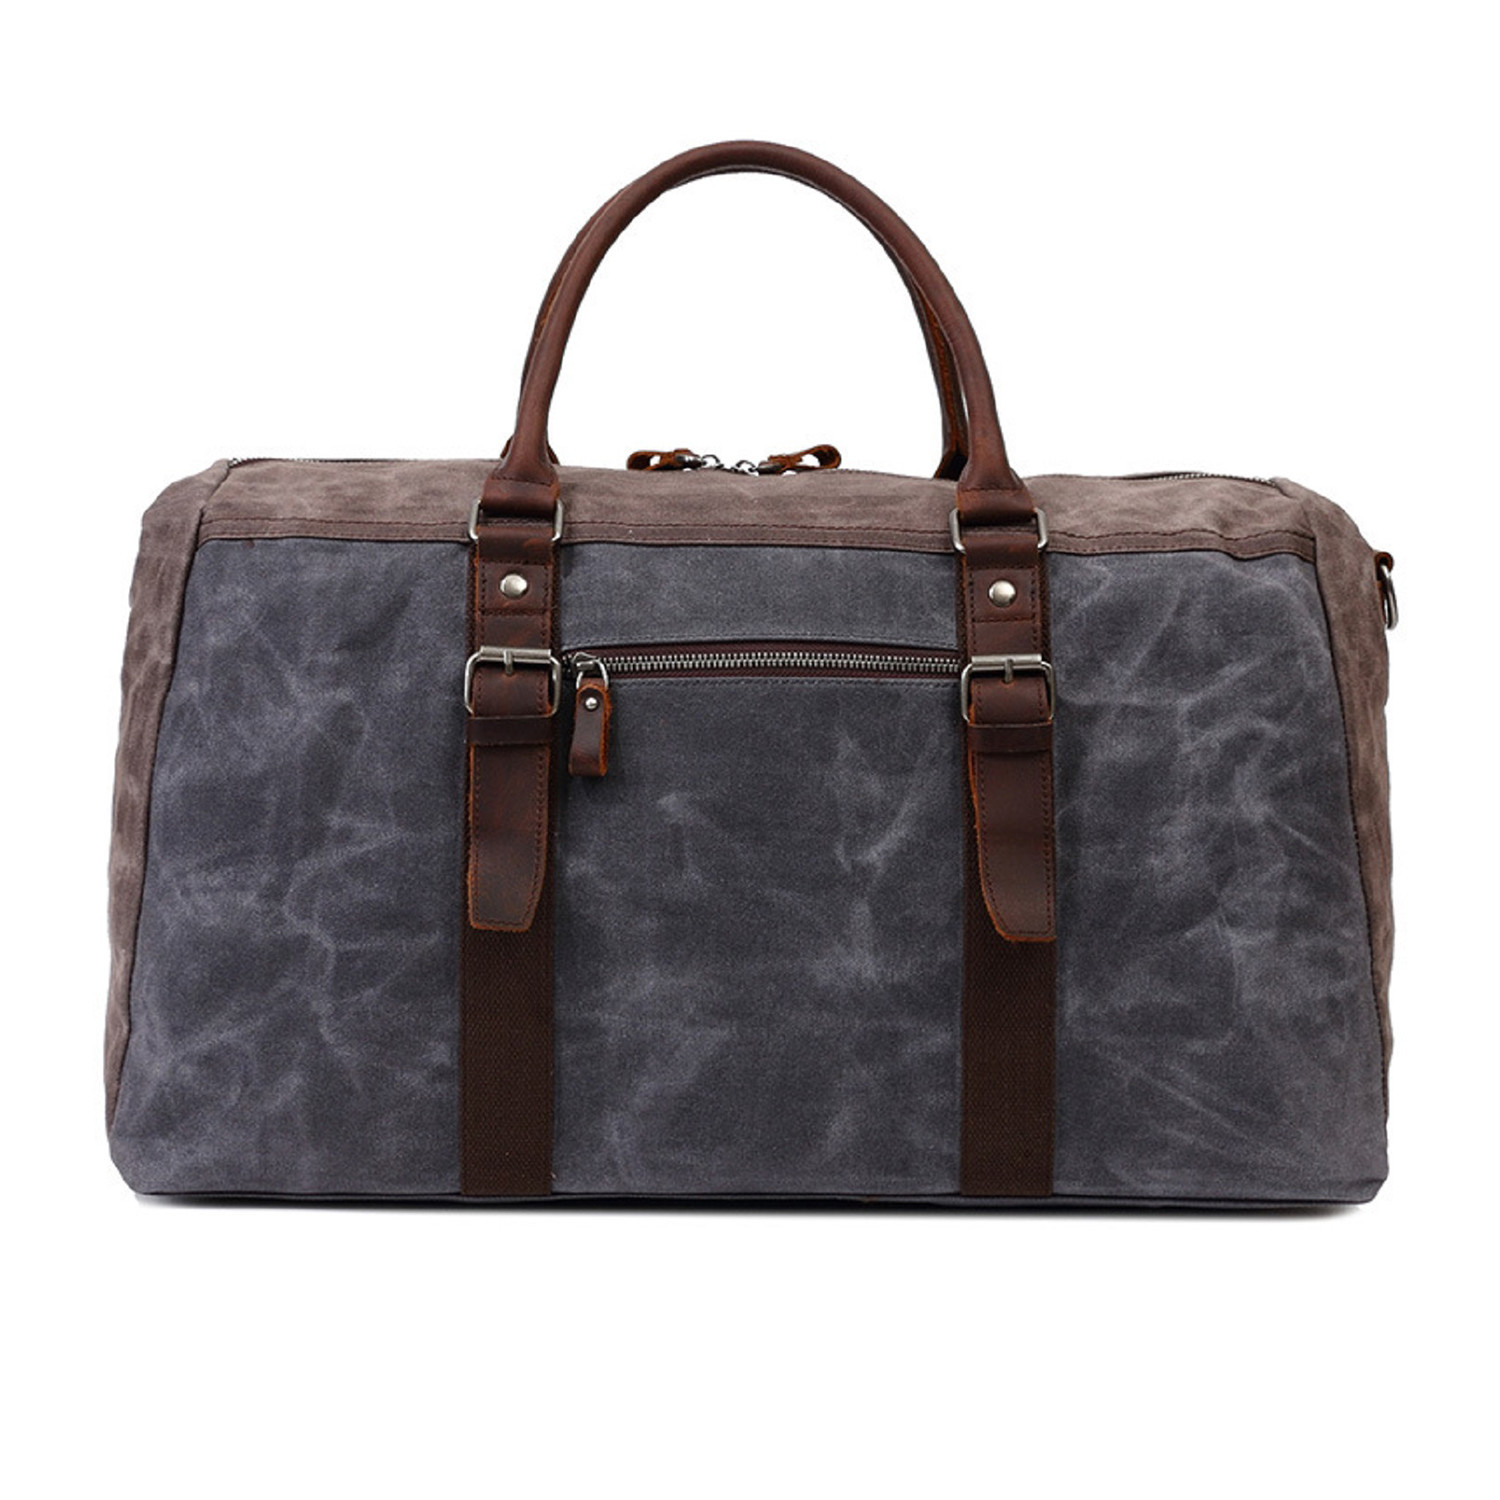 5db60b652f5b Duffel Bag With Front Pocket    Gray - OwnBag - Touch of Modern